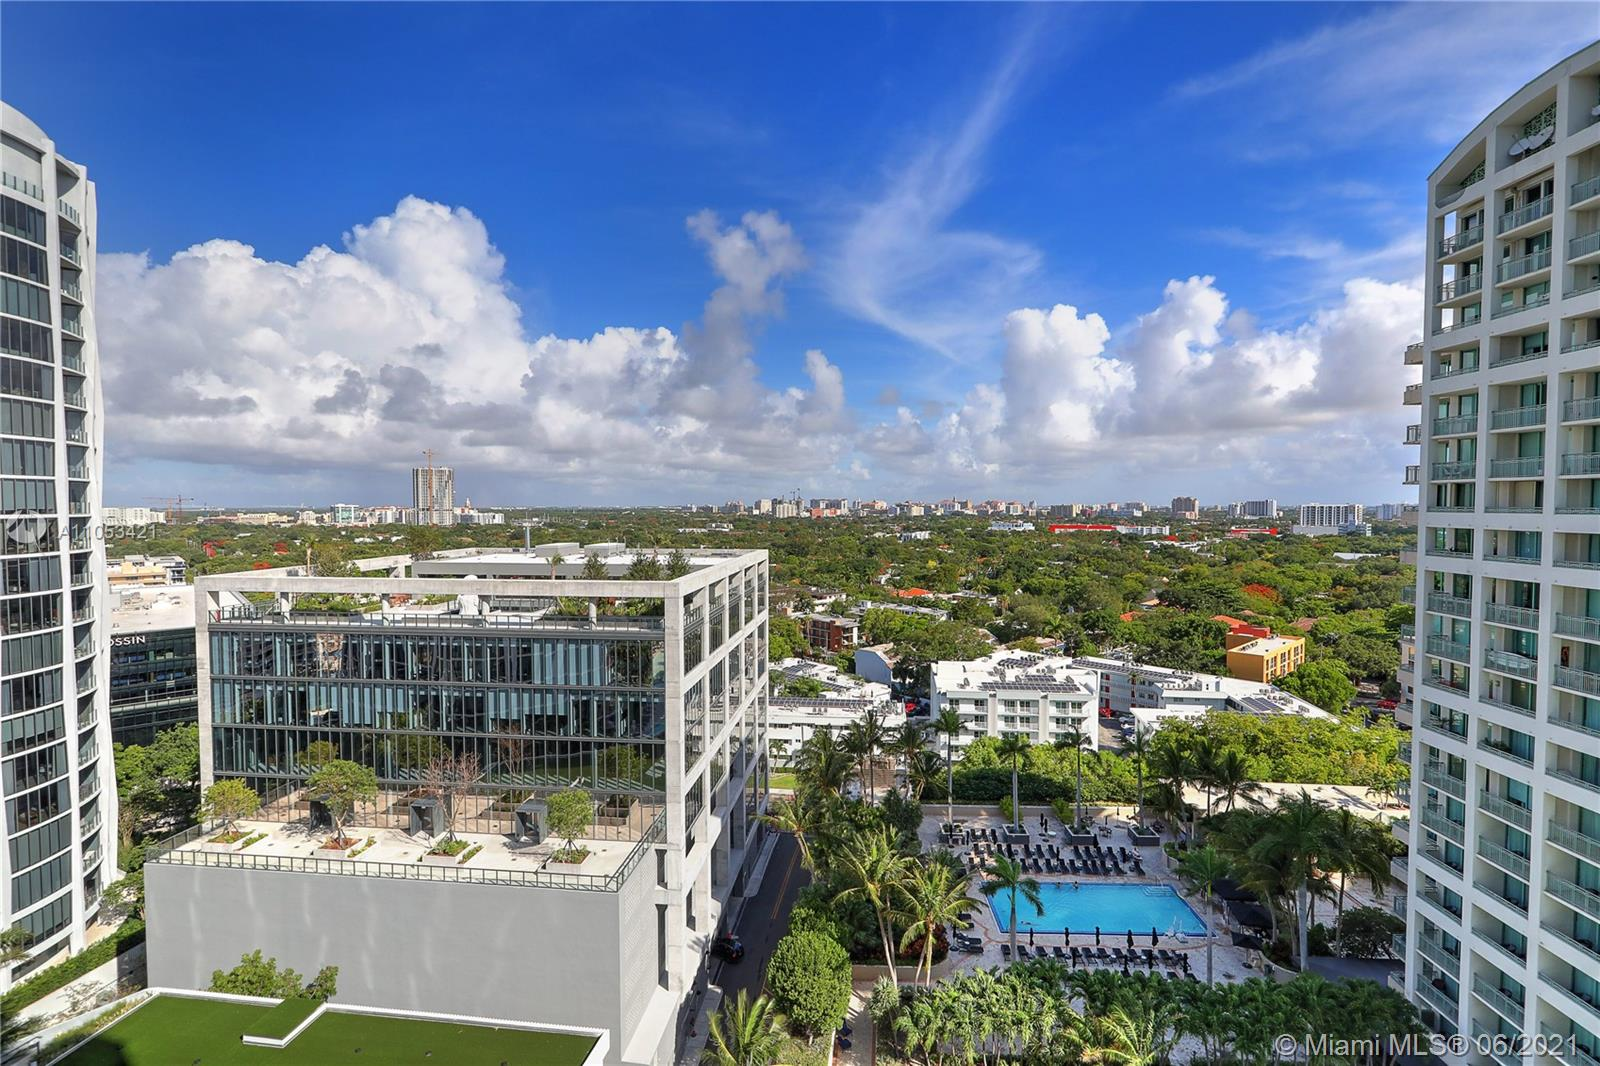 Enjoy the luxurious lifestyle and amenities of the world renown Ritz Carlton. This beautiful 2BR, 2.5BA, features a bright open dining/living area and a split bedroom floor plan. Private balconies off each bedroom and one off the main living area, great for entertaining. One of the most sought after locations in Coconut Grove. This impeccable unit has stainless steel appliances, marble baths, wood plank ceramic tile floors, unobstructed views of Coral Gables/Downtown skylines and exquisite sunsets. Amenities include 2 pools, full service spa, restaurant and bar, 24 hour room service and complimentary valet parking. Walk to dining, shops and parks. The name Ritz Carlton Residences sets the standard for luxury and service throughout the world.   A MUST SEE!